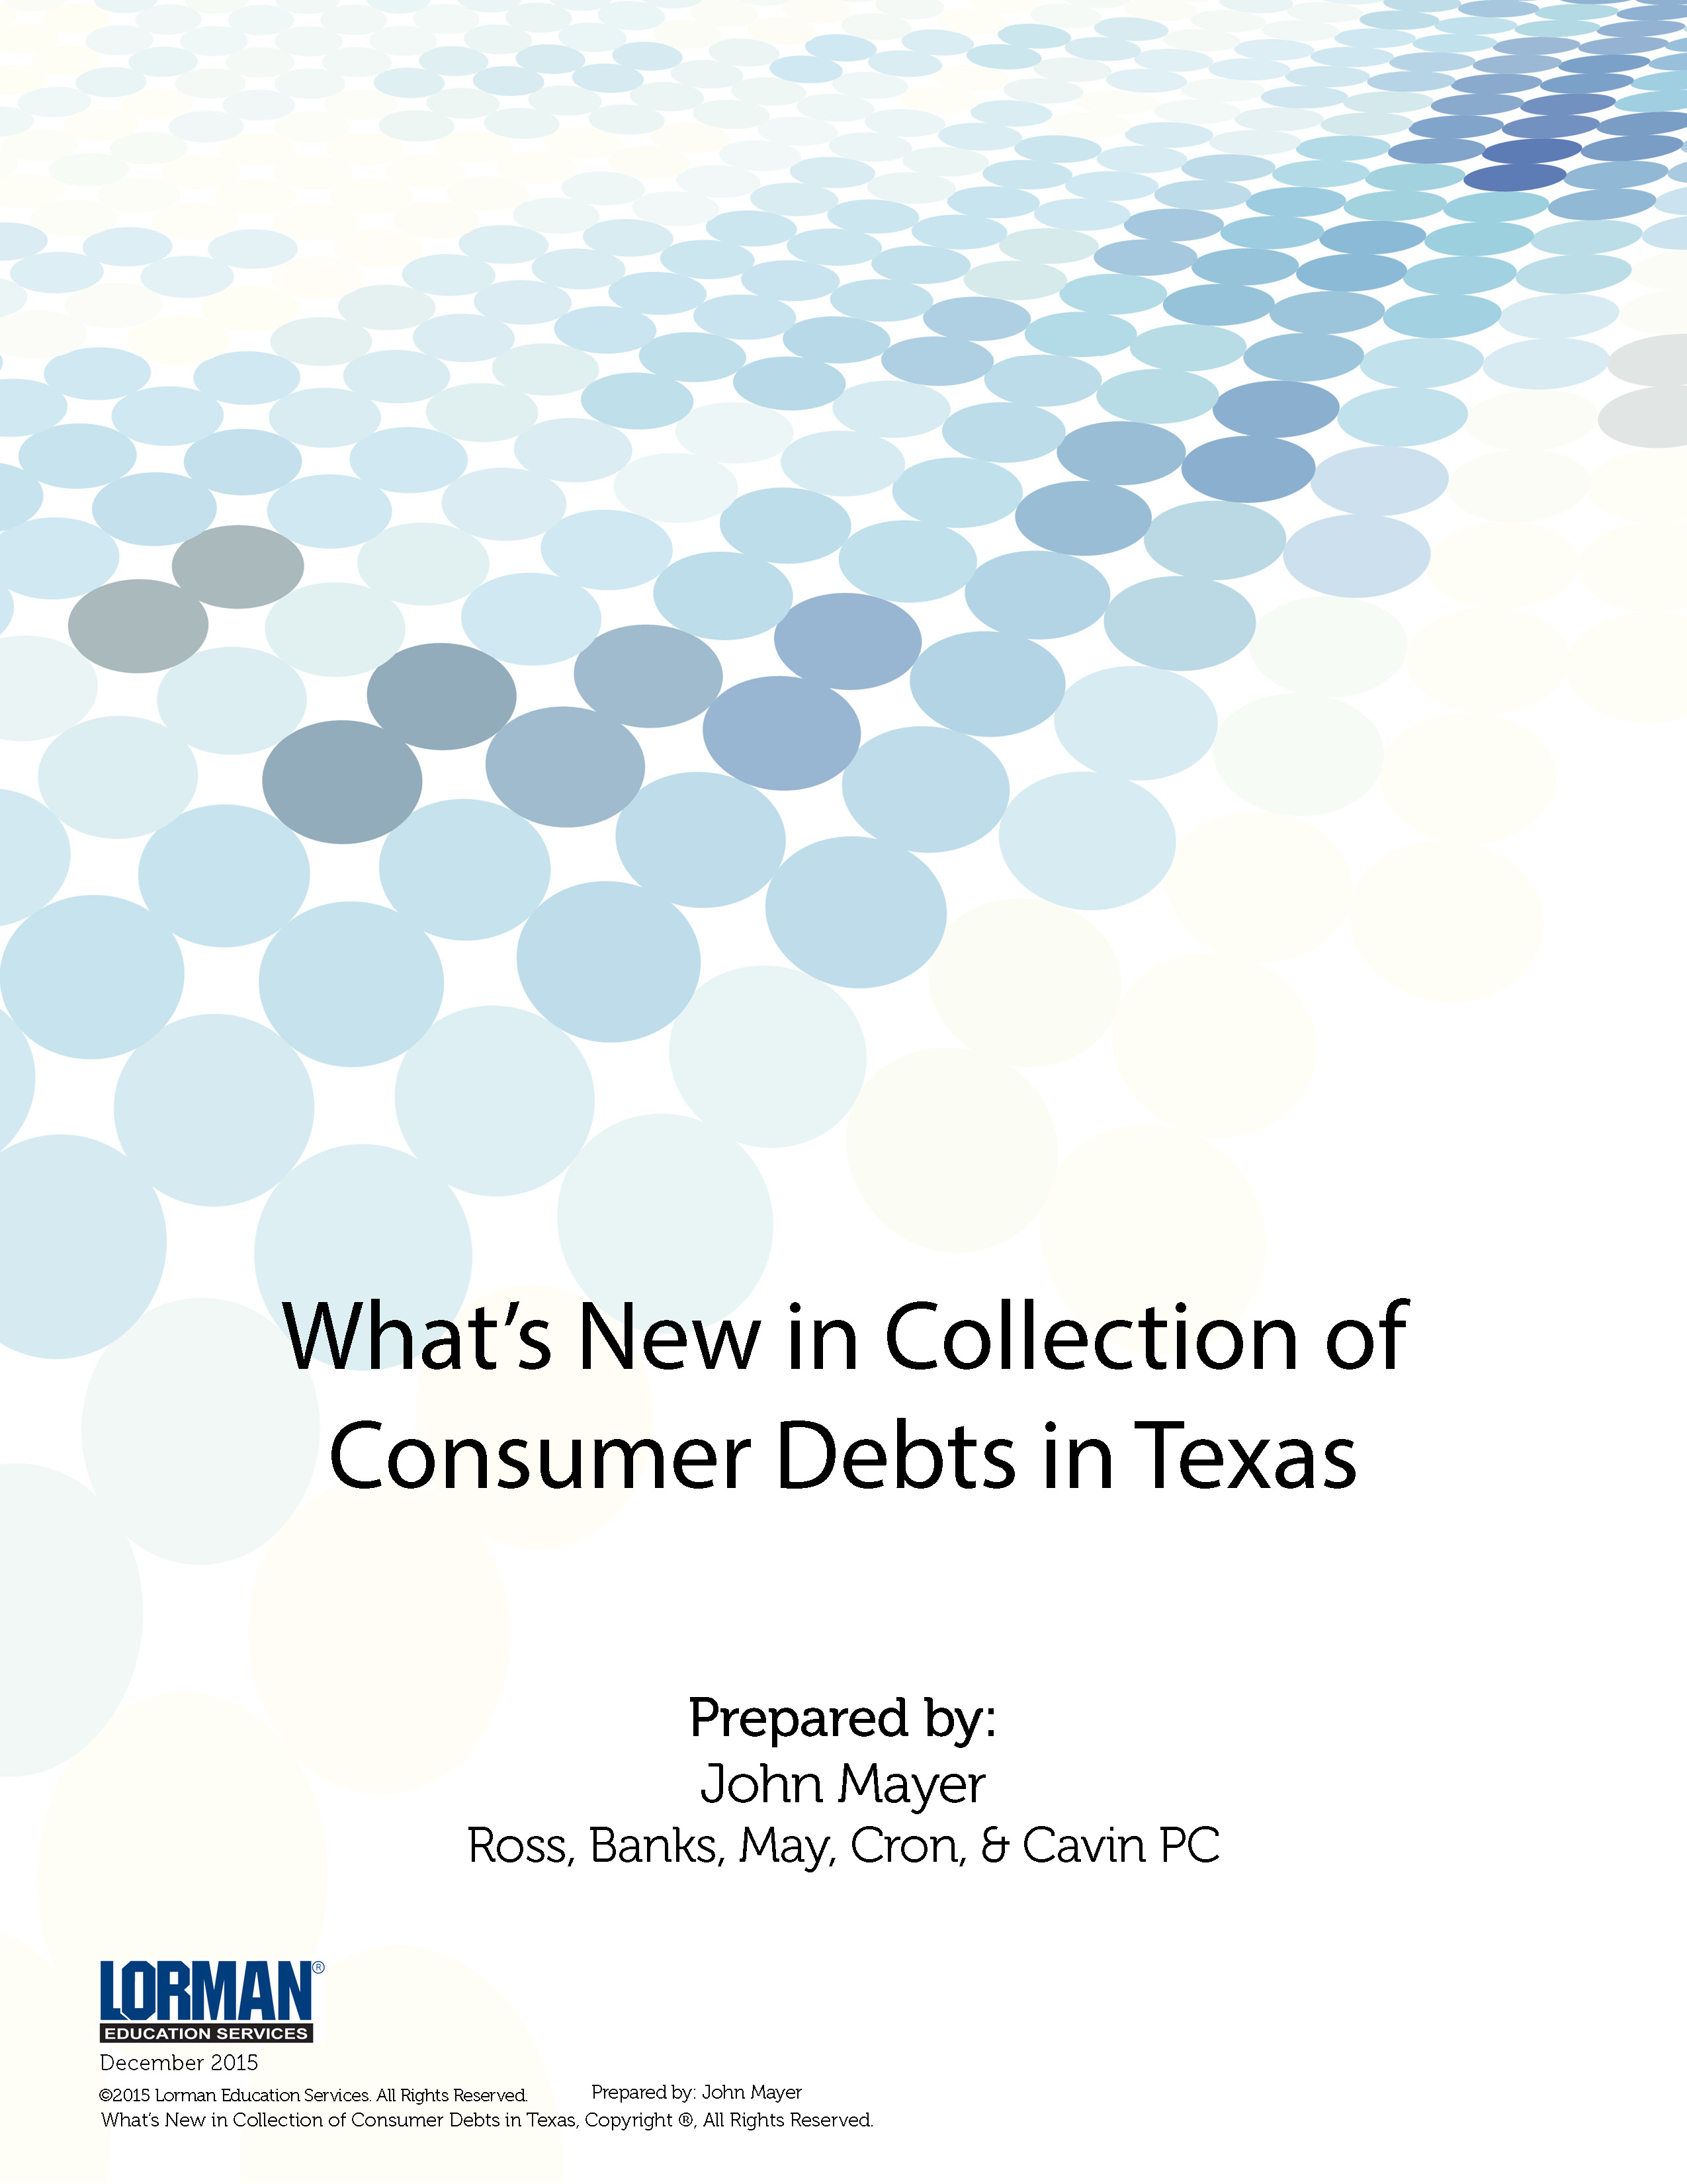 What's New in Collection of Consumer Debts in Texas — White